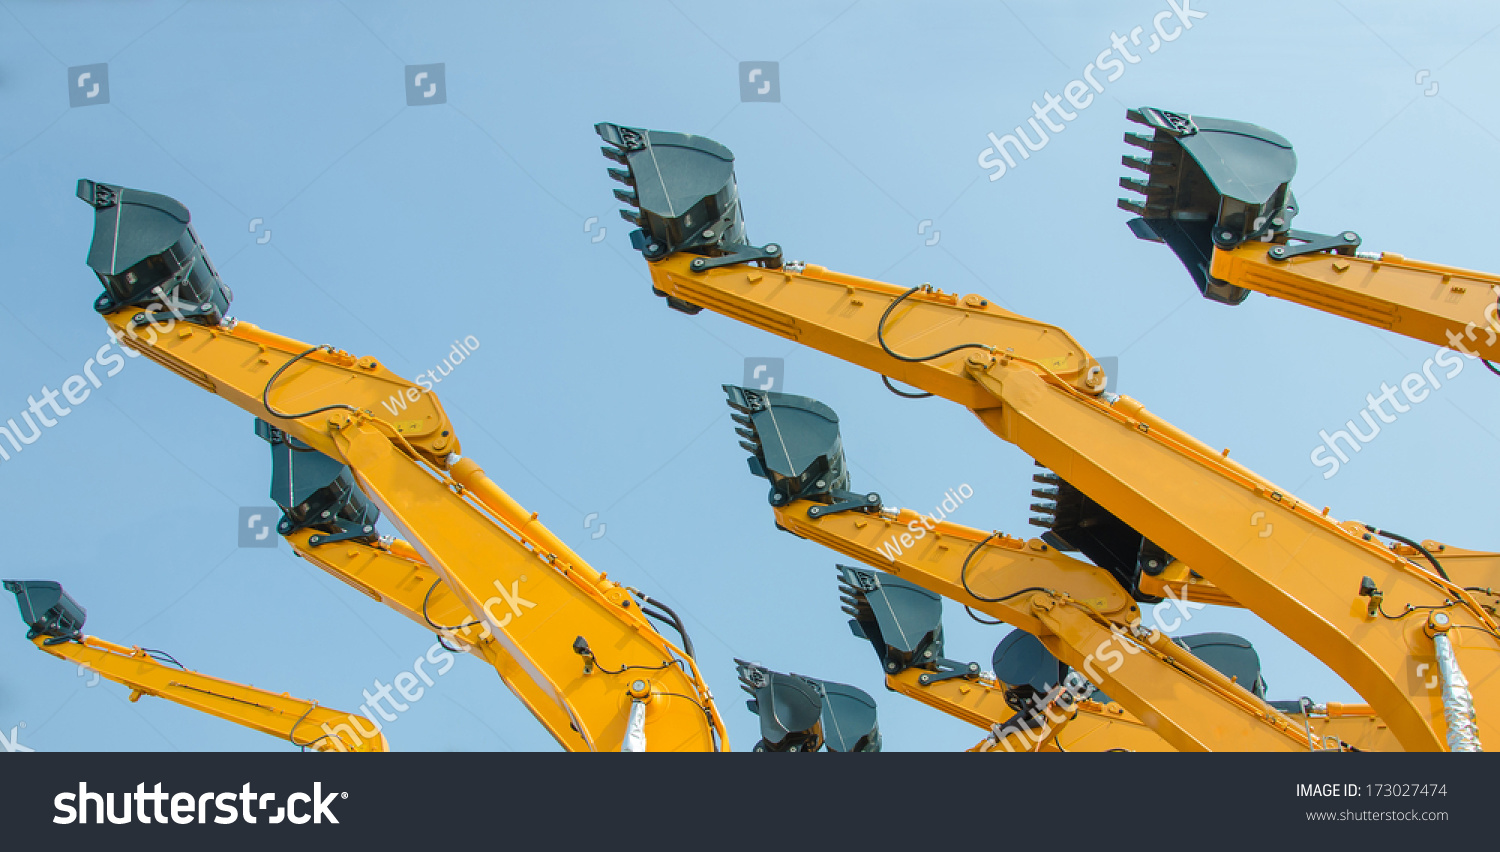 Excavator Hydraulic Arm Project : Excavator bucket on the end of a yellow hydraulic arm